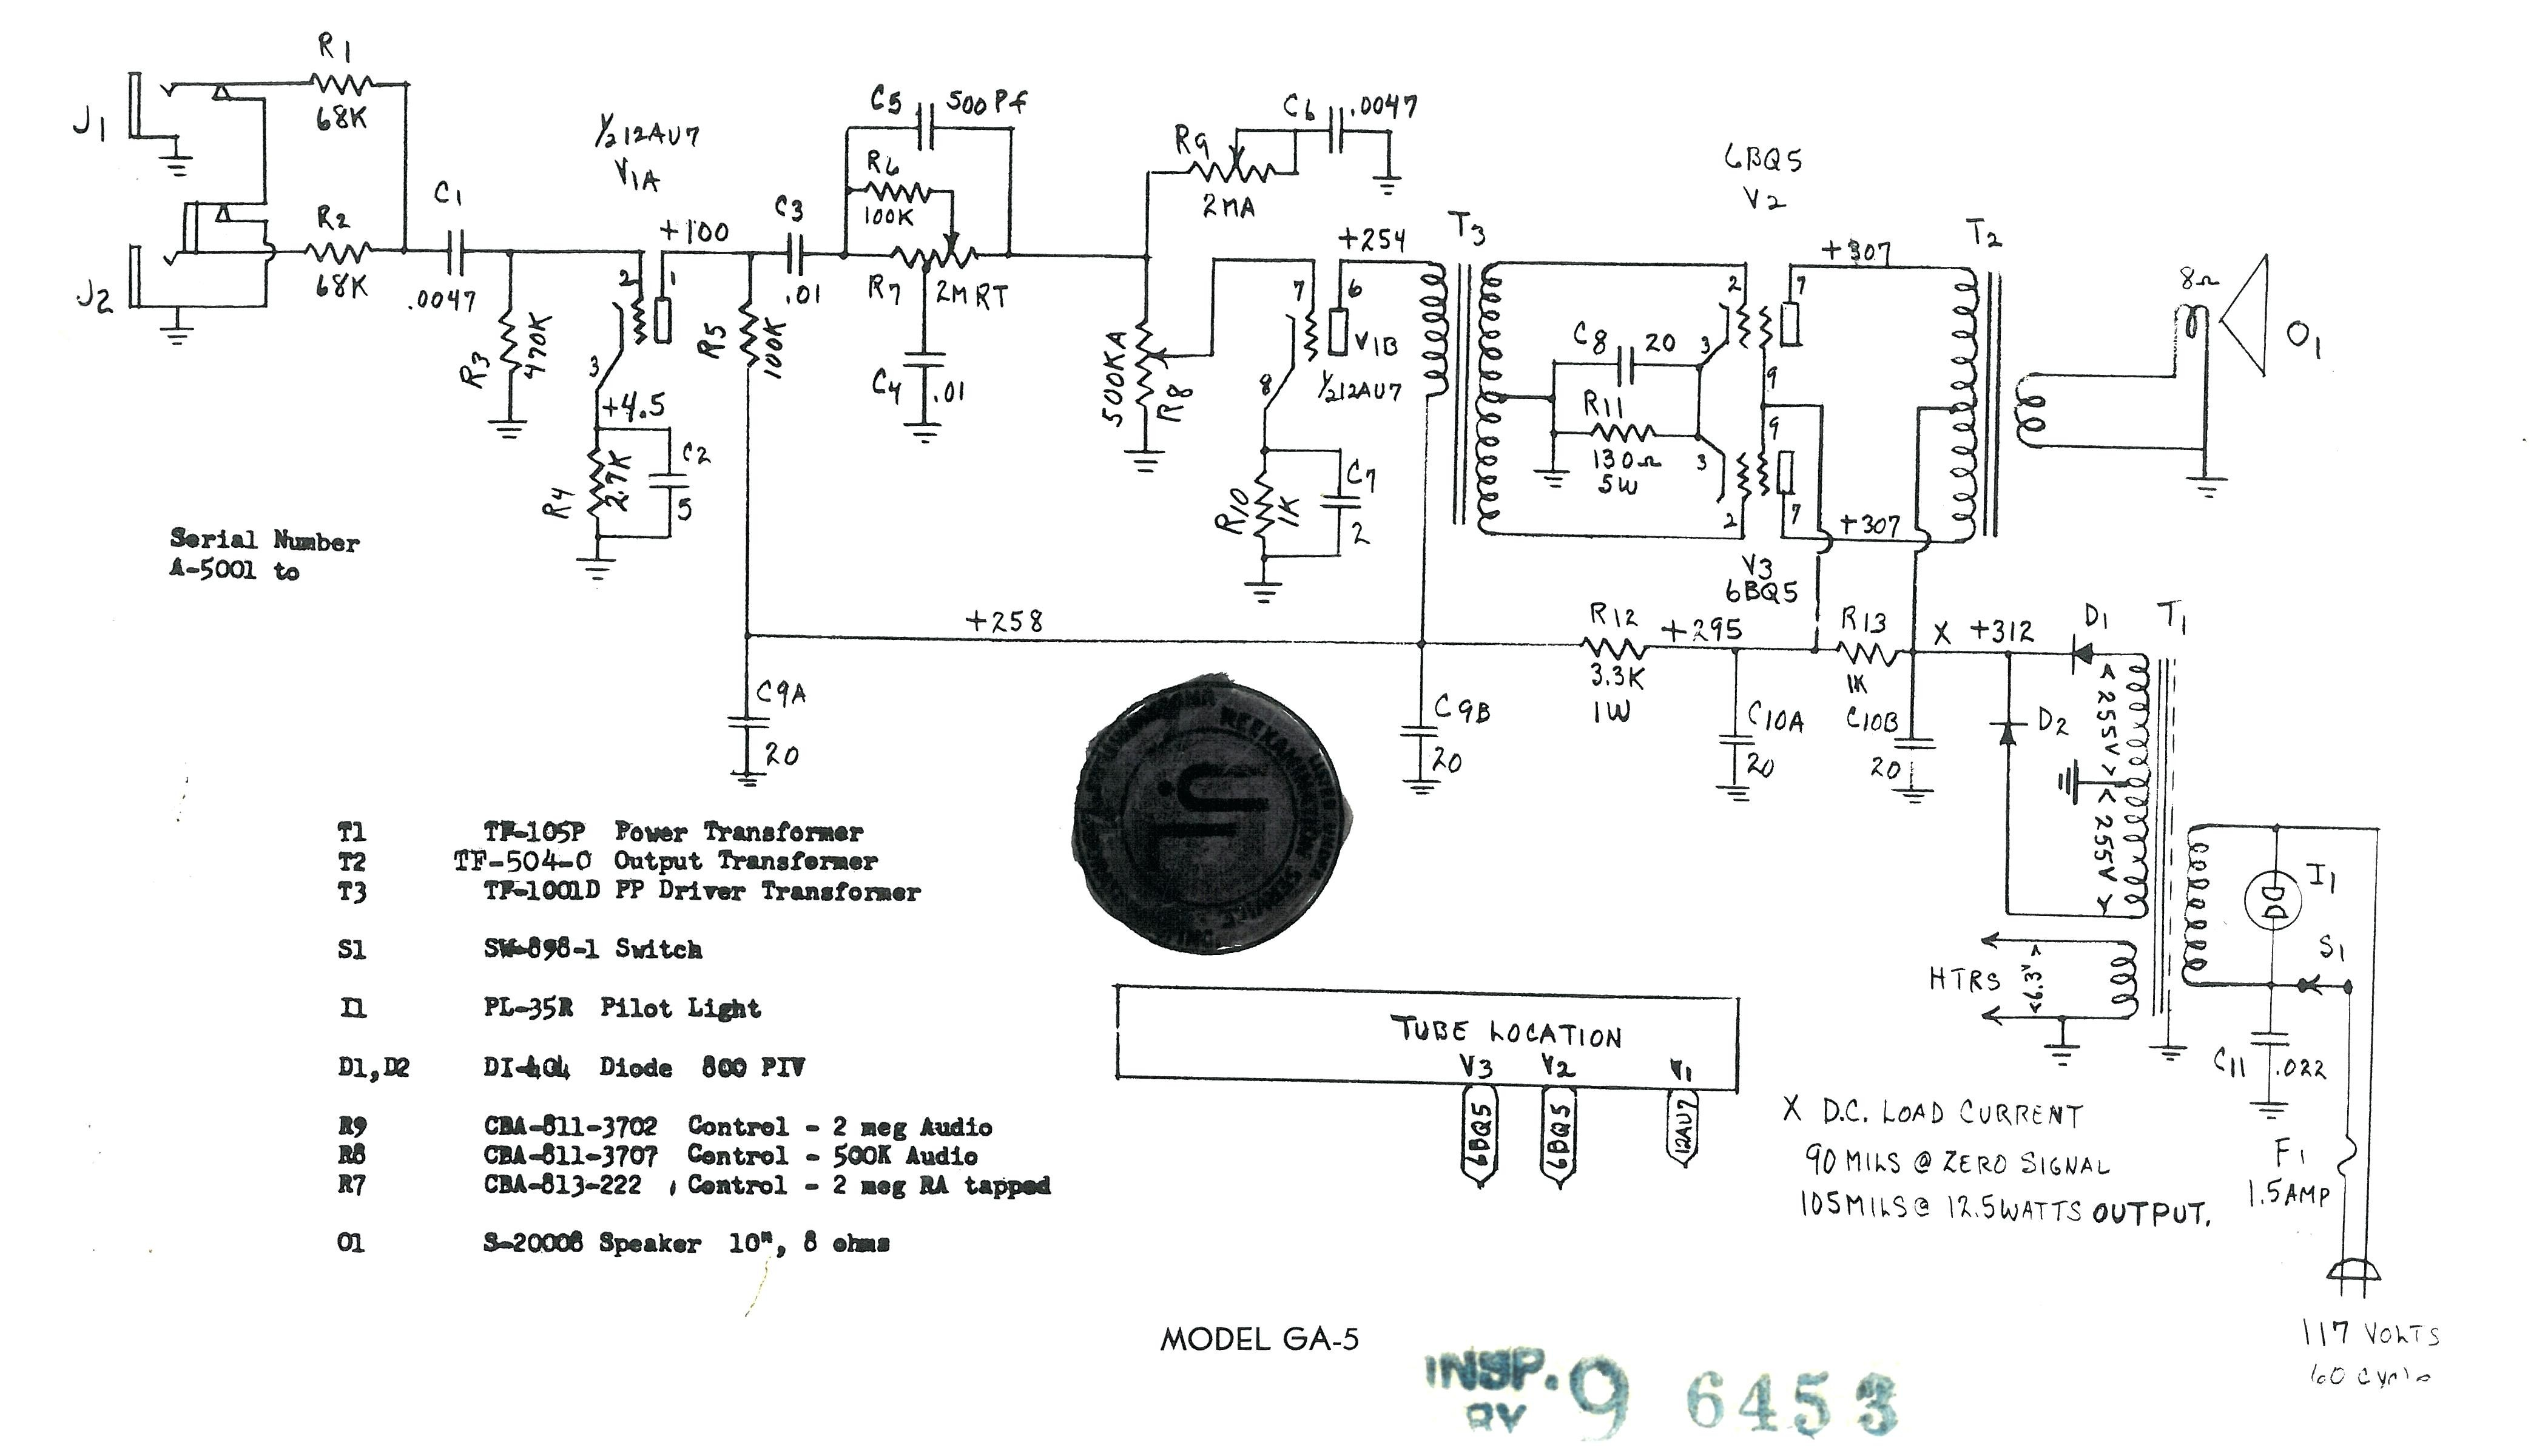 Full Size of Wiring Diagram For Ceiling Fan With Light 9 Restoration Acme Buck Boost Transformer